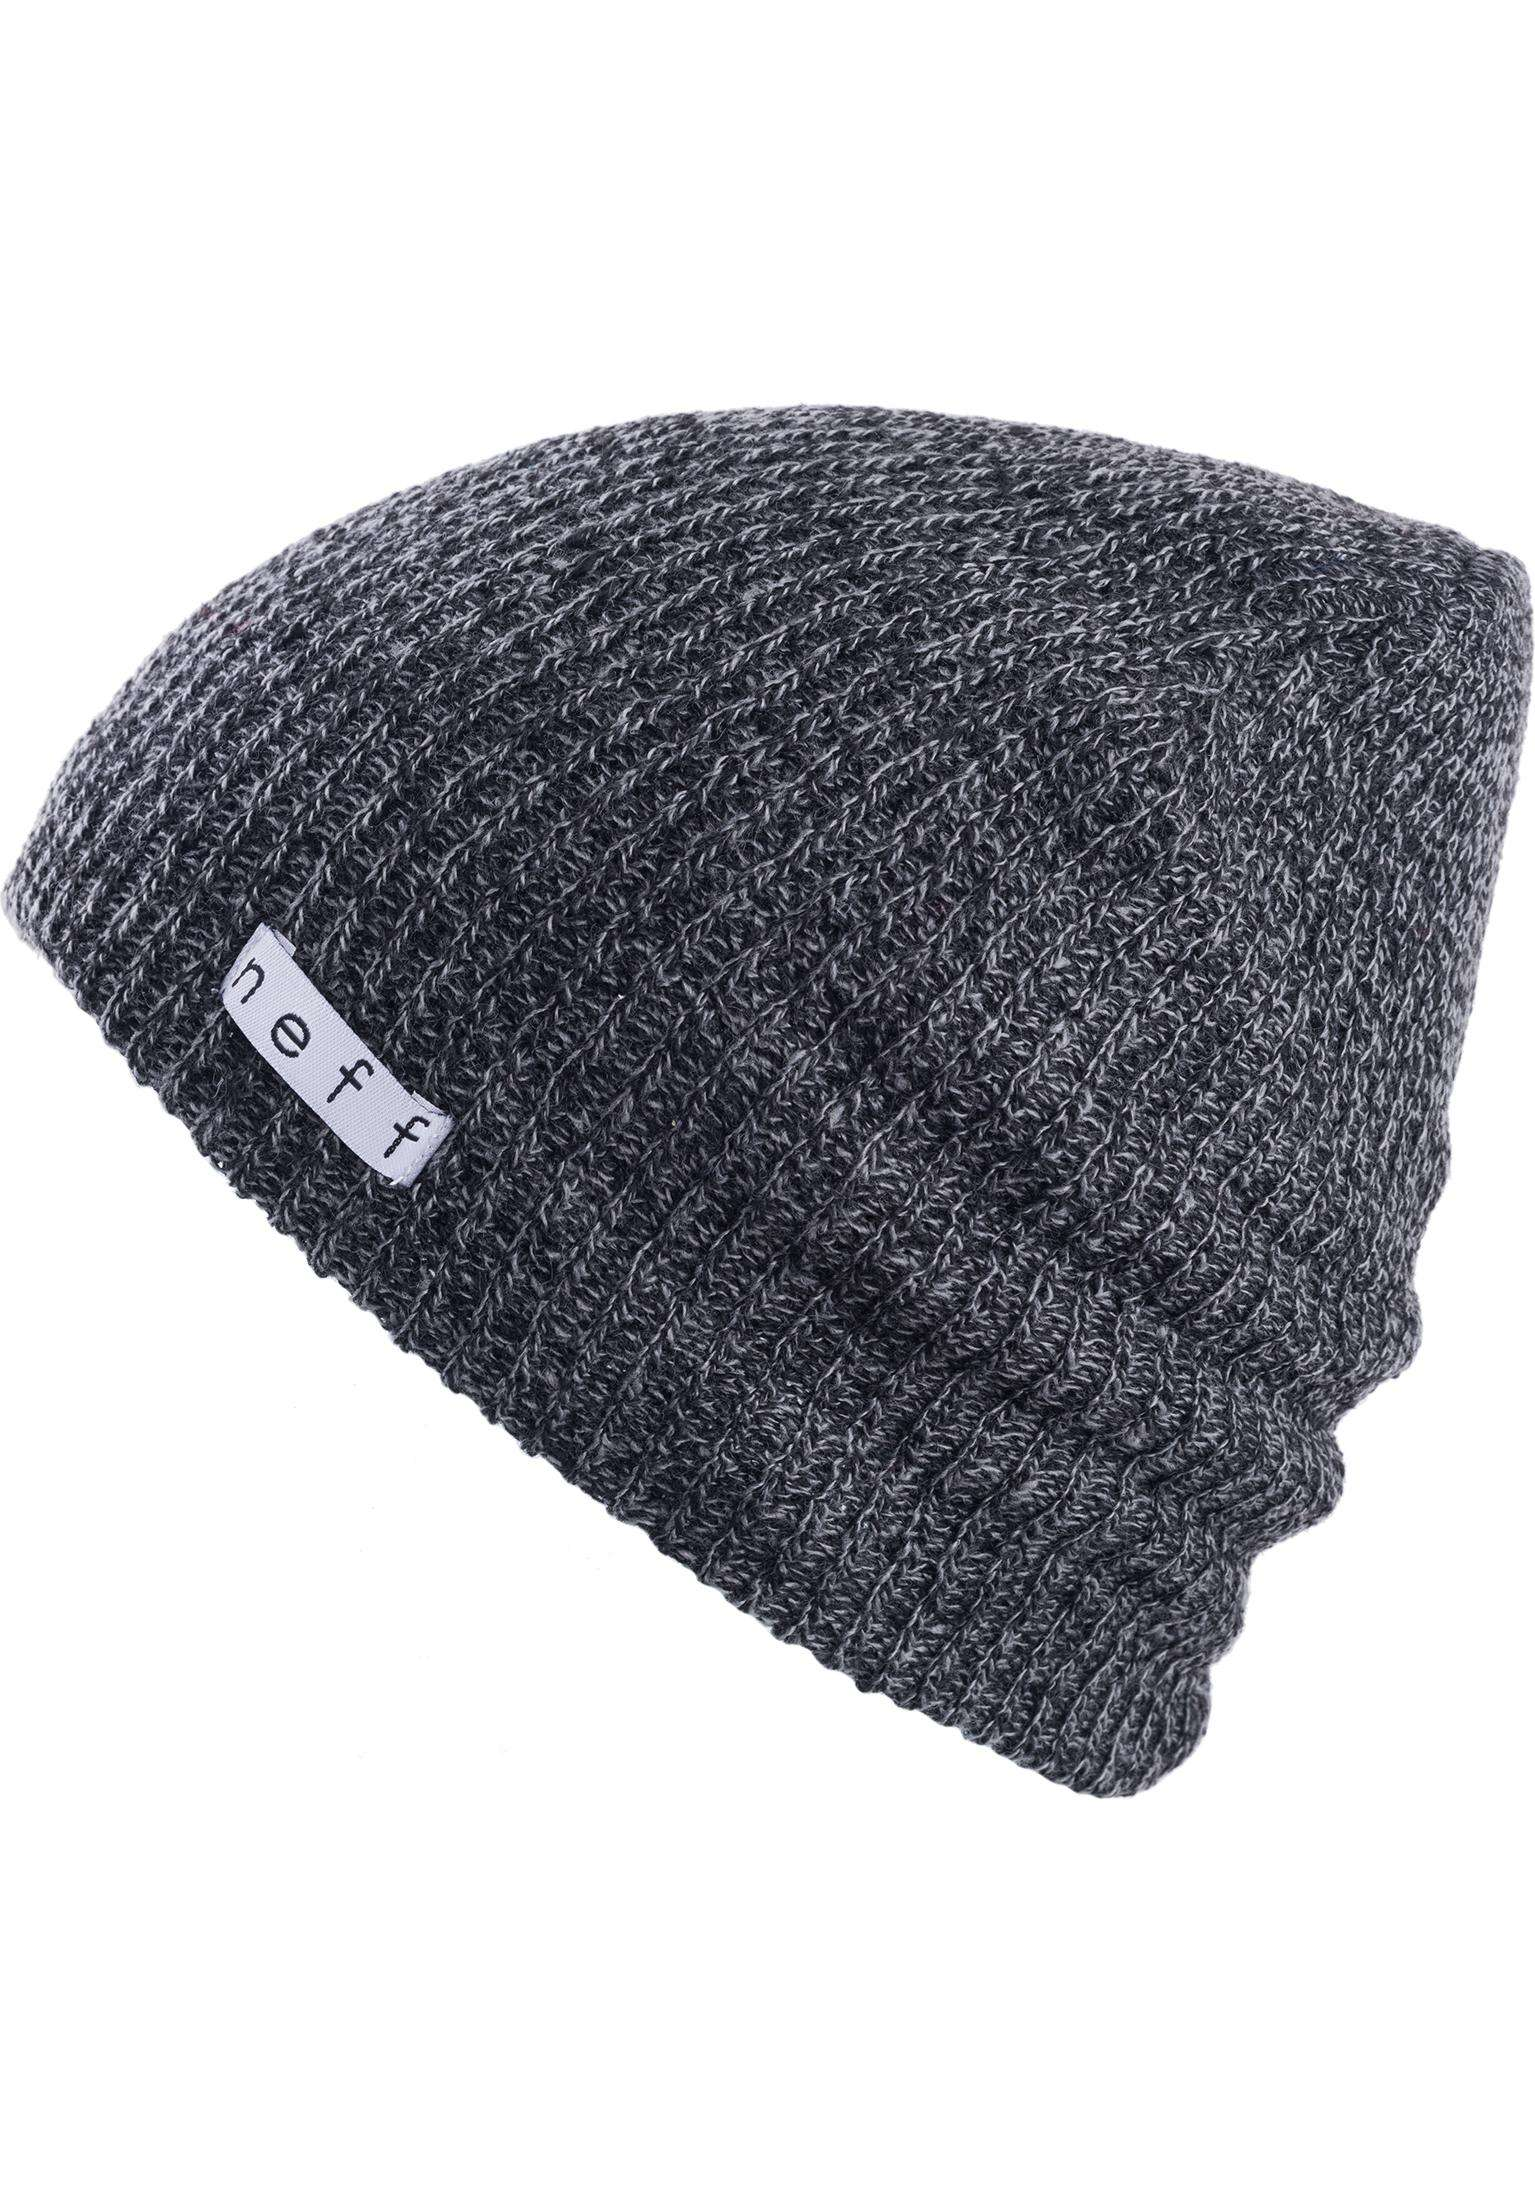 e2a49596b2f Daily Heather Neff Beanies in black-grey for Men